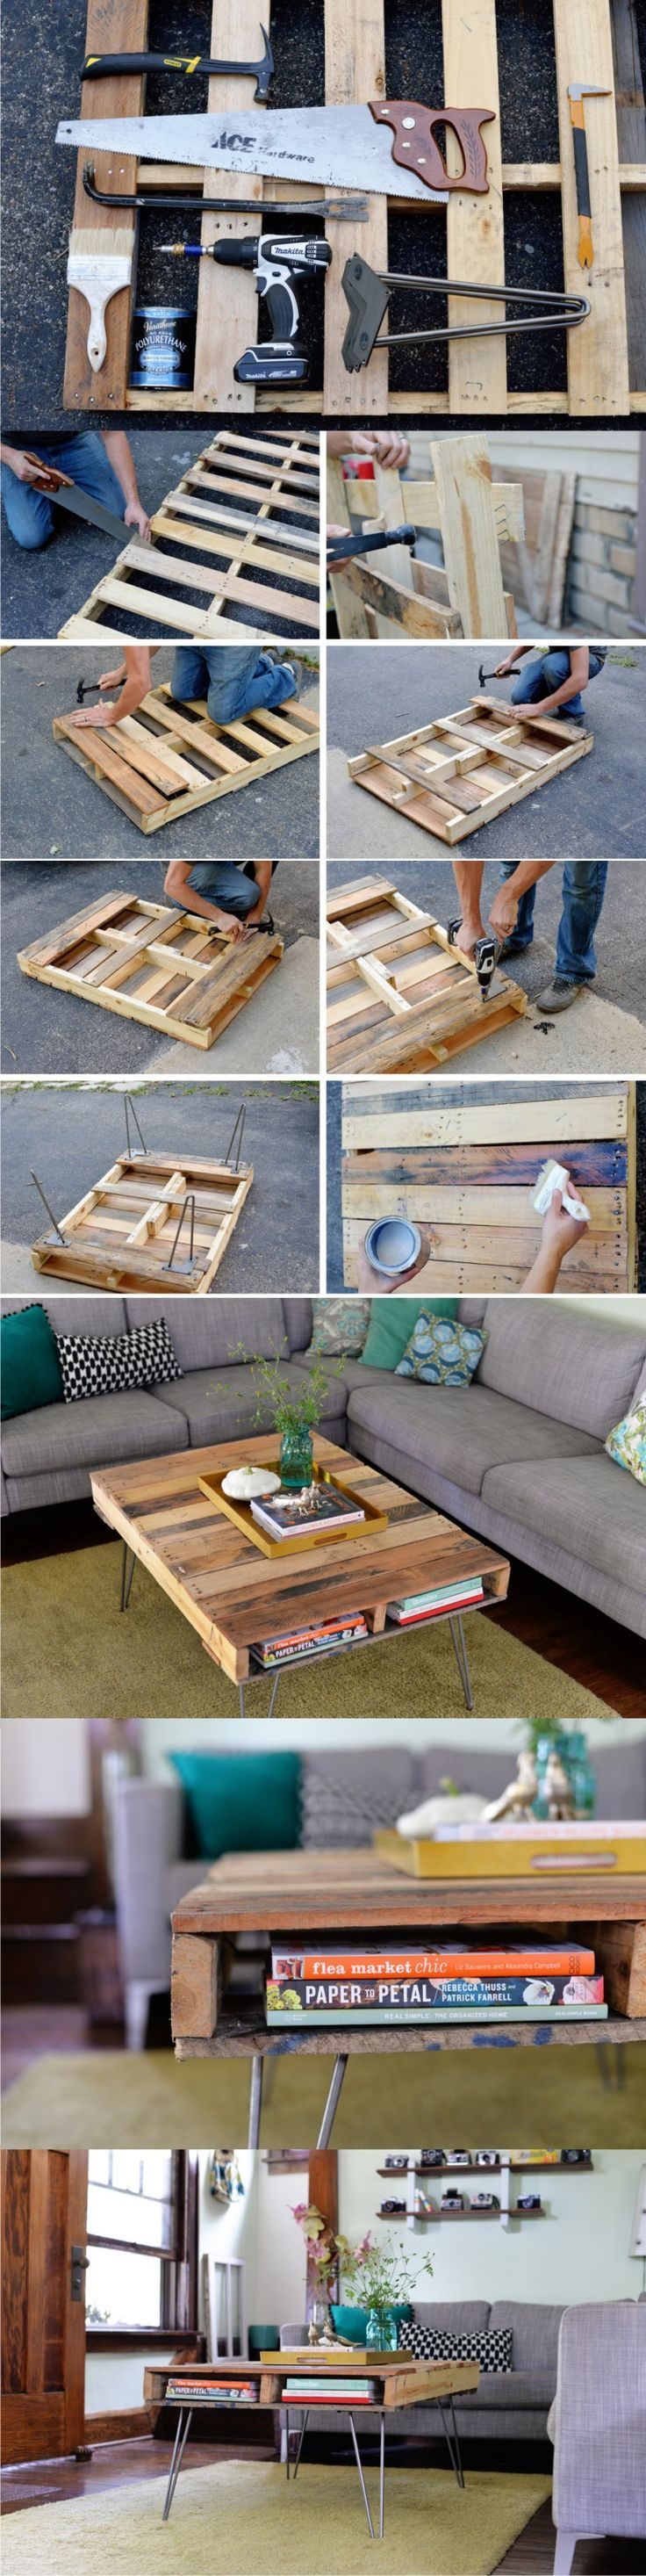 4c36cc1c6732a11db91c214c1a0fc2fa--pallet-crafts-pallet-projects Meilleur De De Mr Bricolage Salon De Jardin